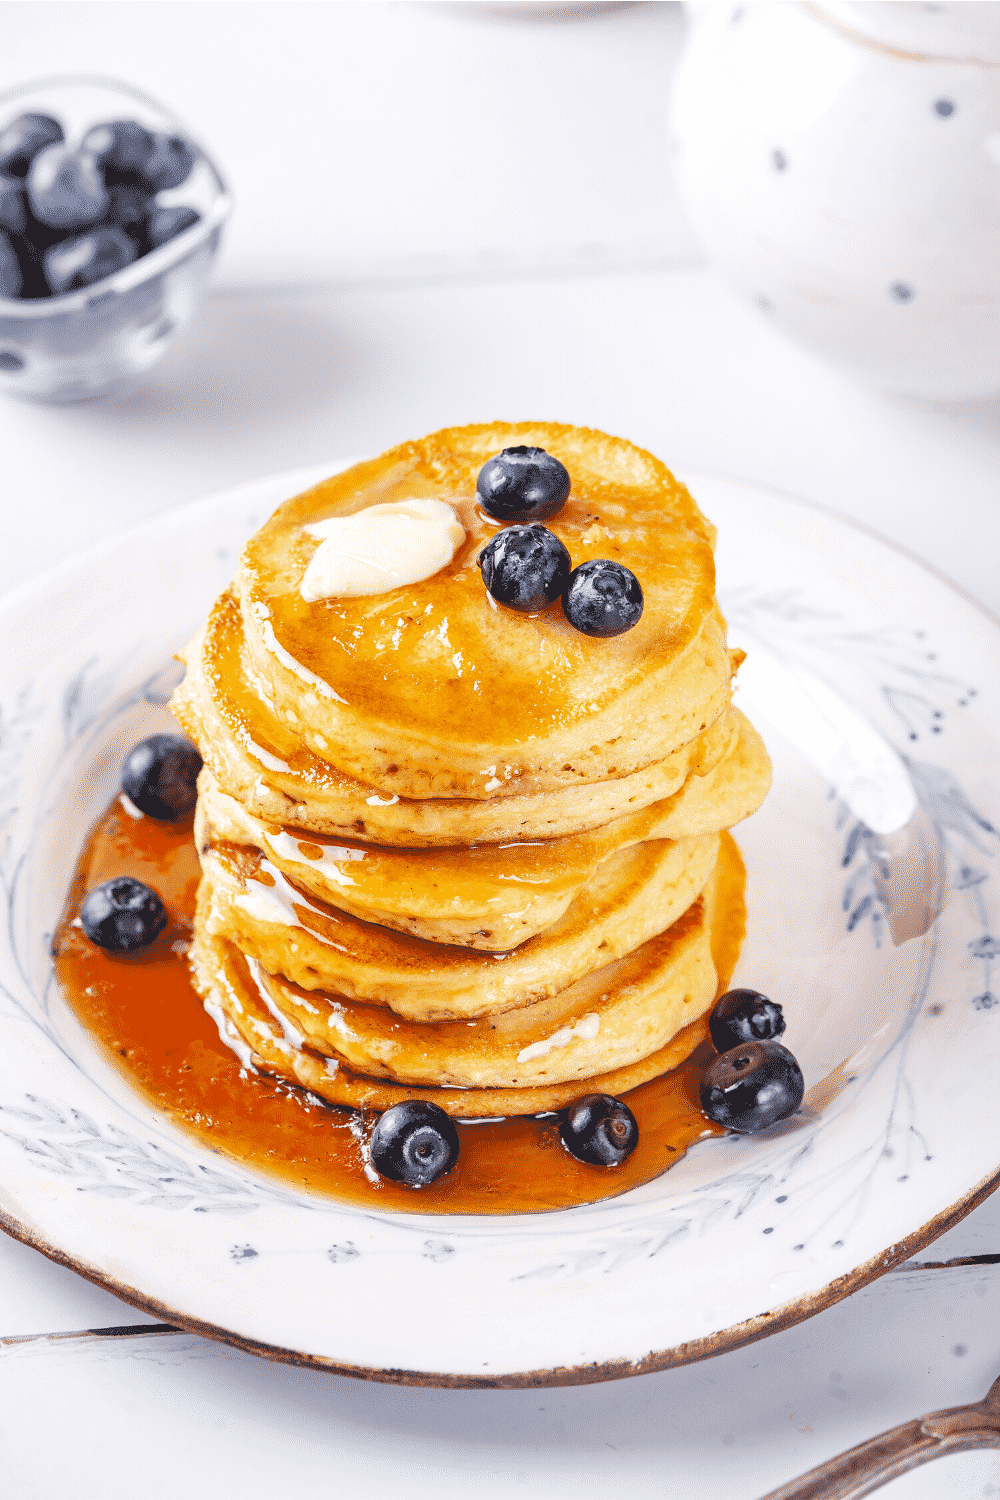 A stack of six pancakes on a white plate with some syrup on the front side of the pancakes and a pool of syrup on the front of the plate